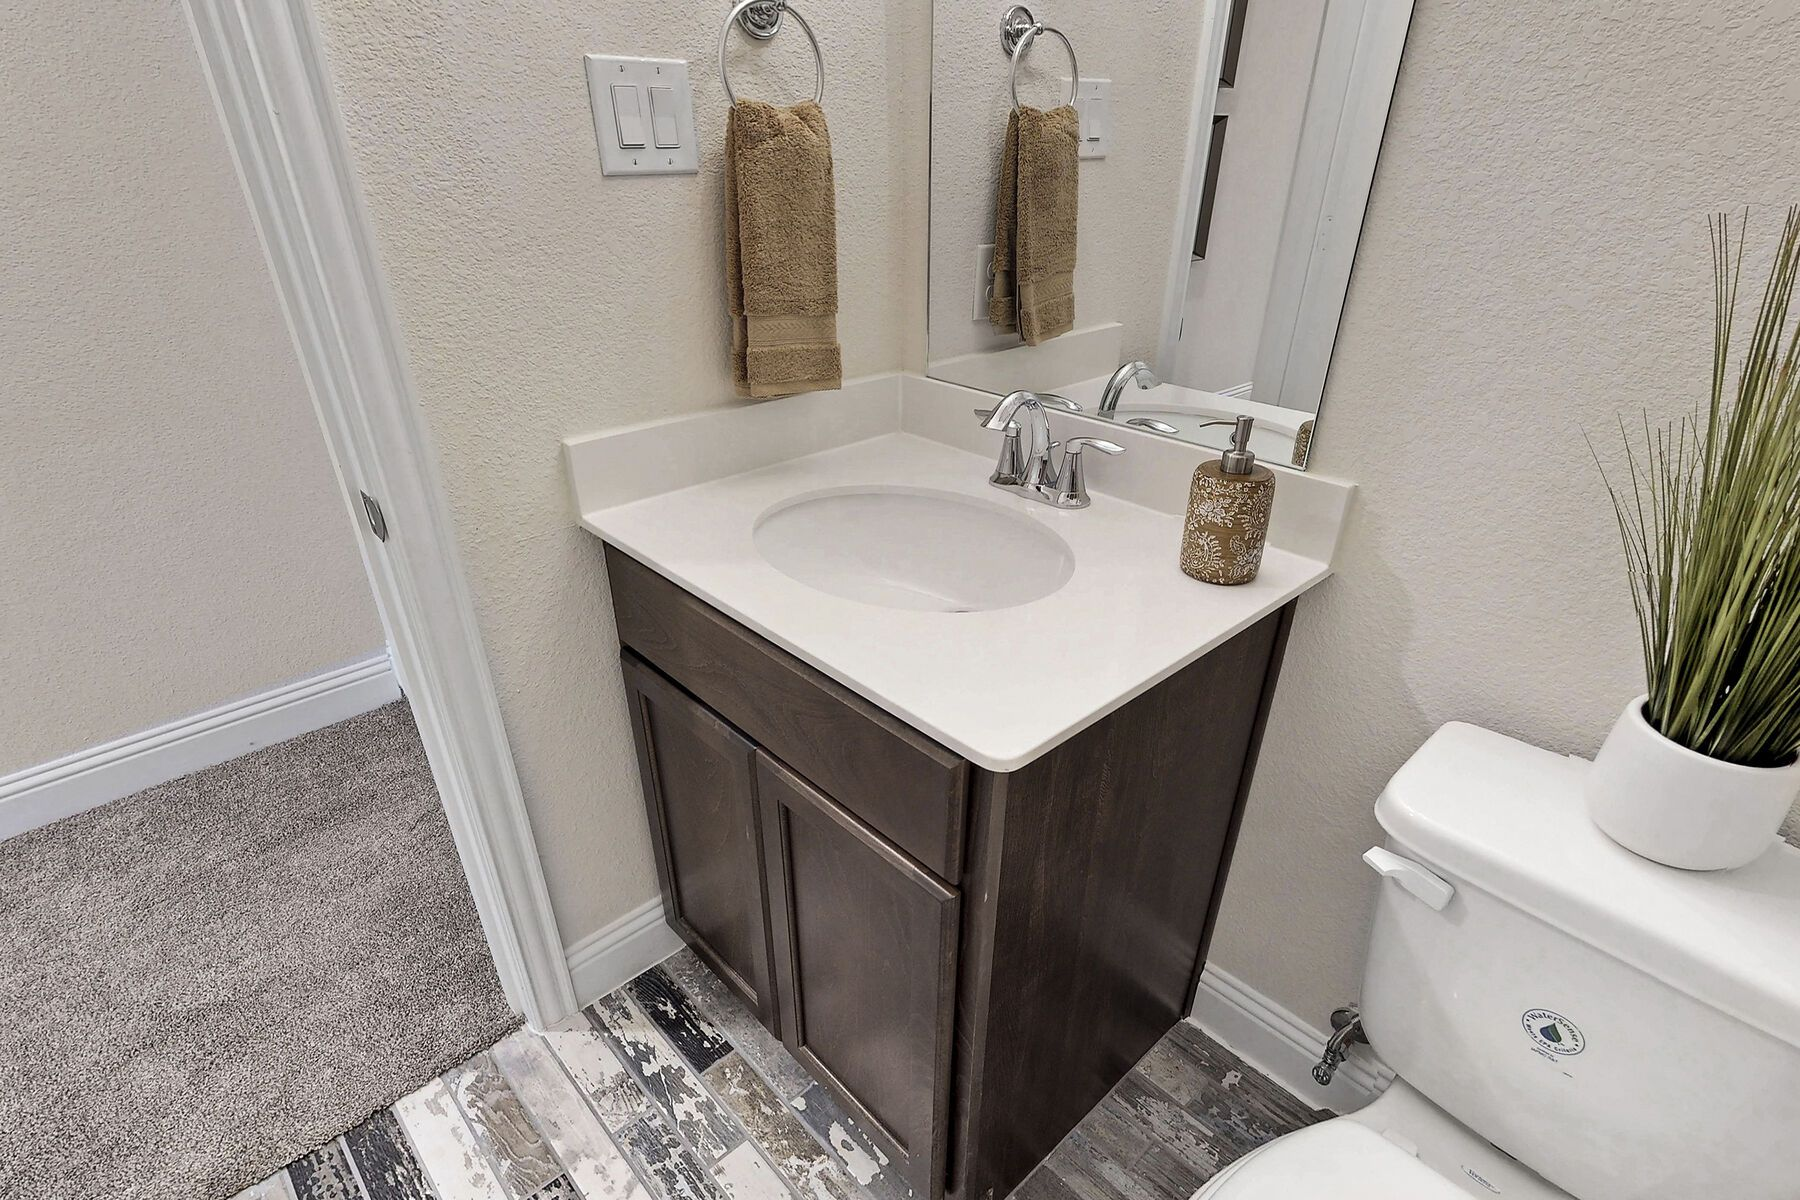 Bathroom featured in the Zacate By M/I Homes in Fort Worth, TX